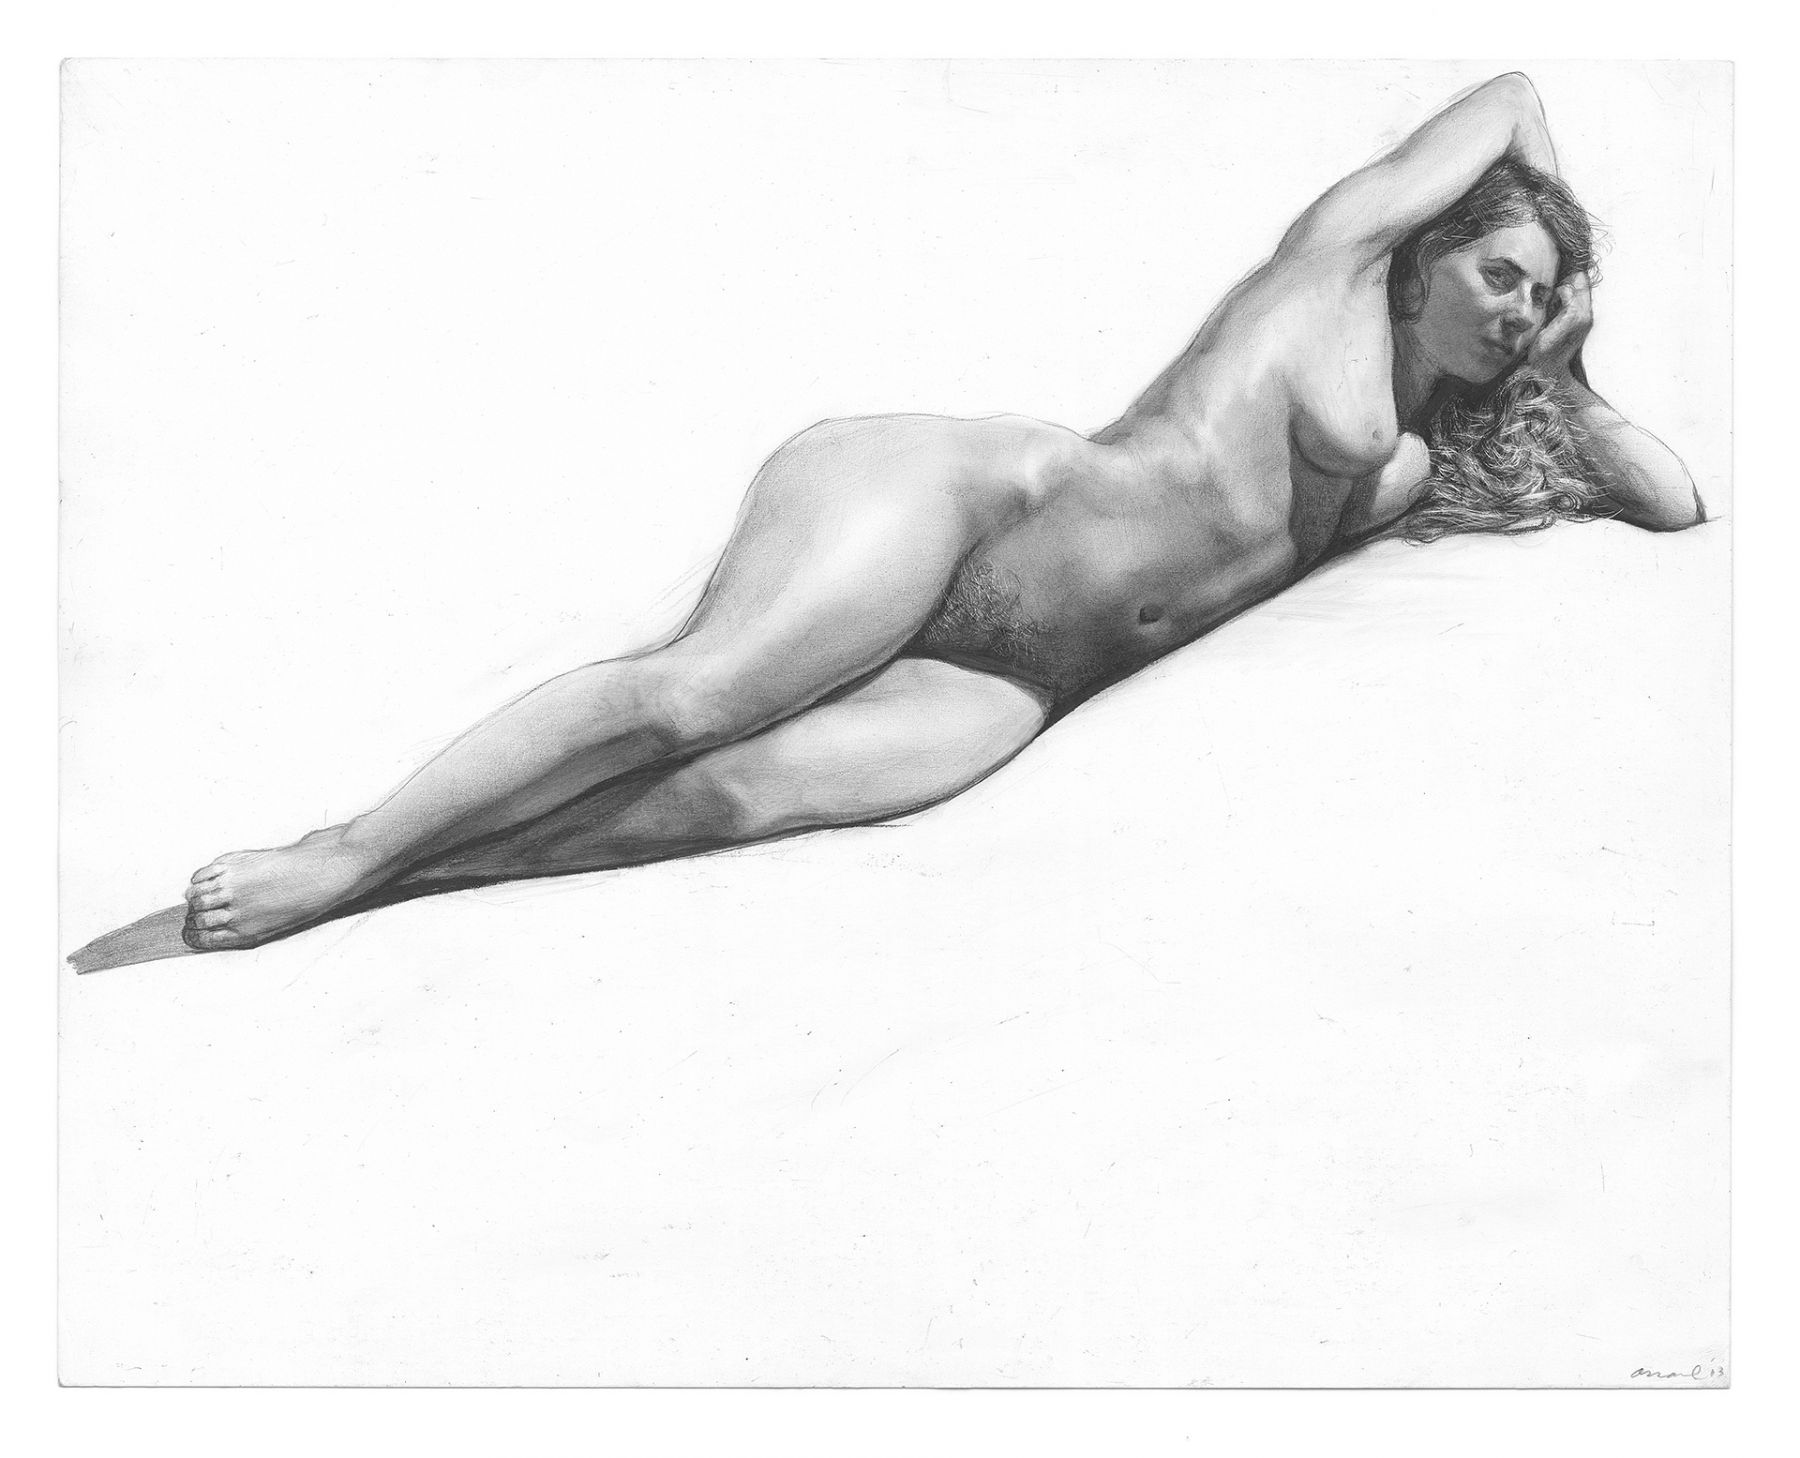 Steven Assael, Reclining Figure Resting on Arm, 2013, graphite on paper, 11 x 14 inches